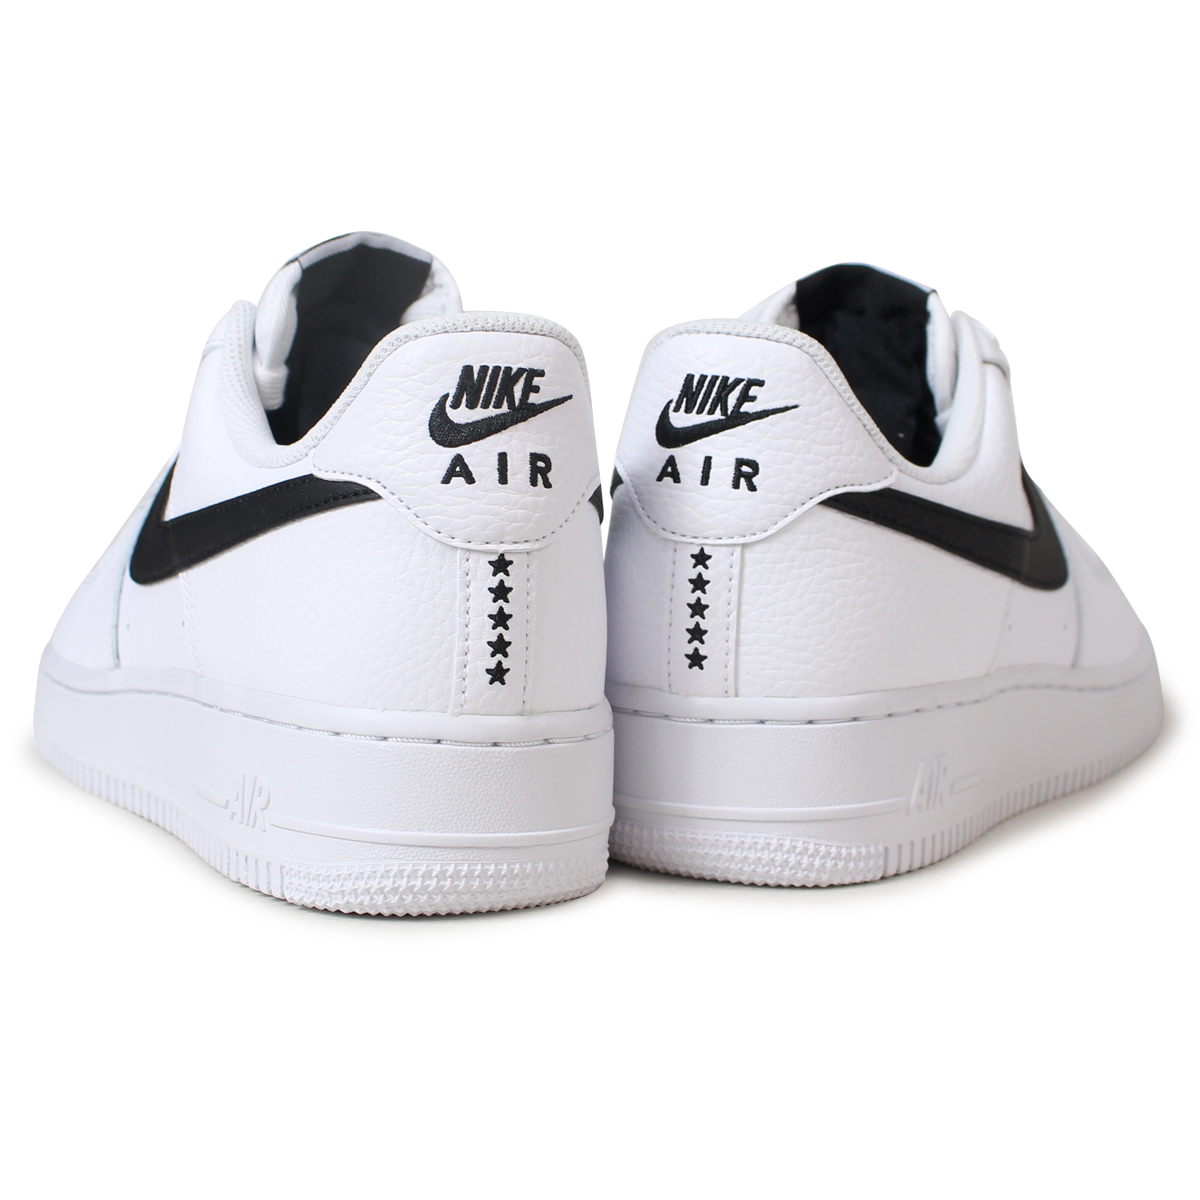 size 40 61ce4 dd447 NIKE AIR FORCE 1 Nike air force 1 07 sneakers men AA4083-103 white